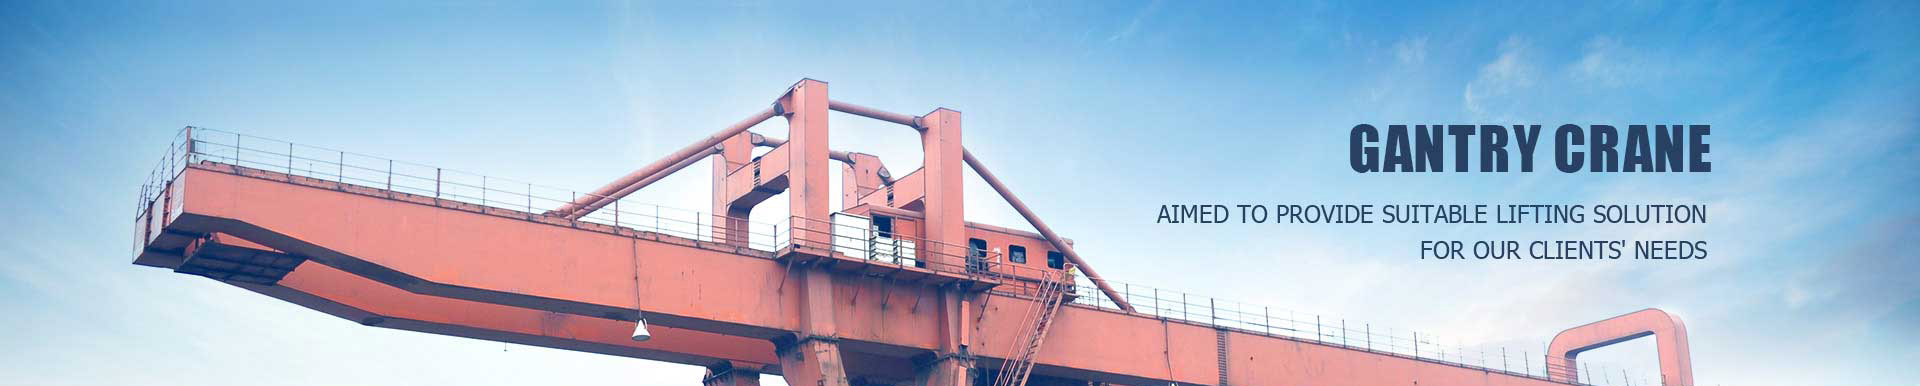 china gantry crane supplier